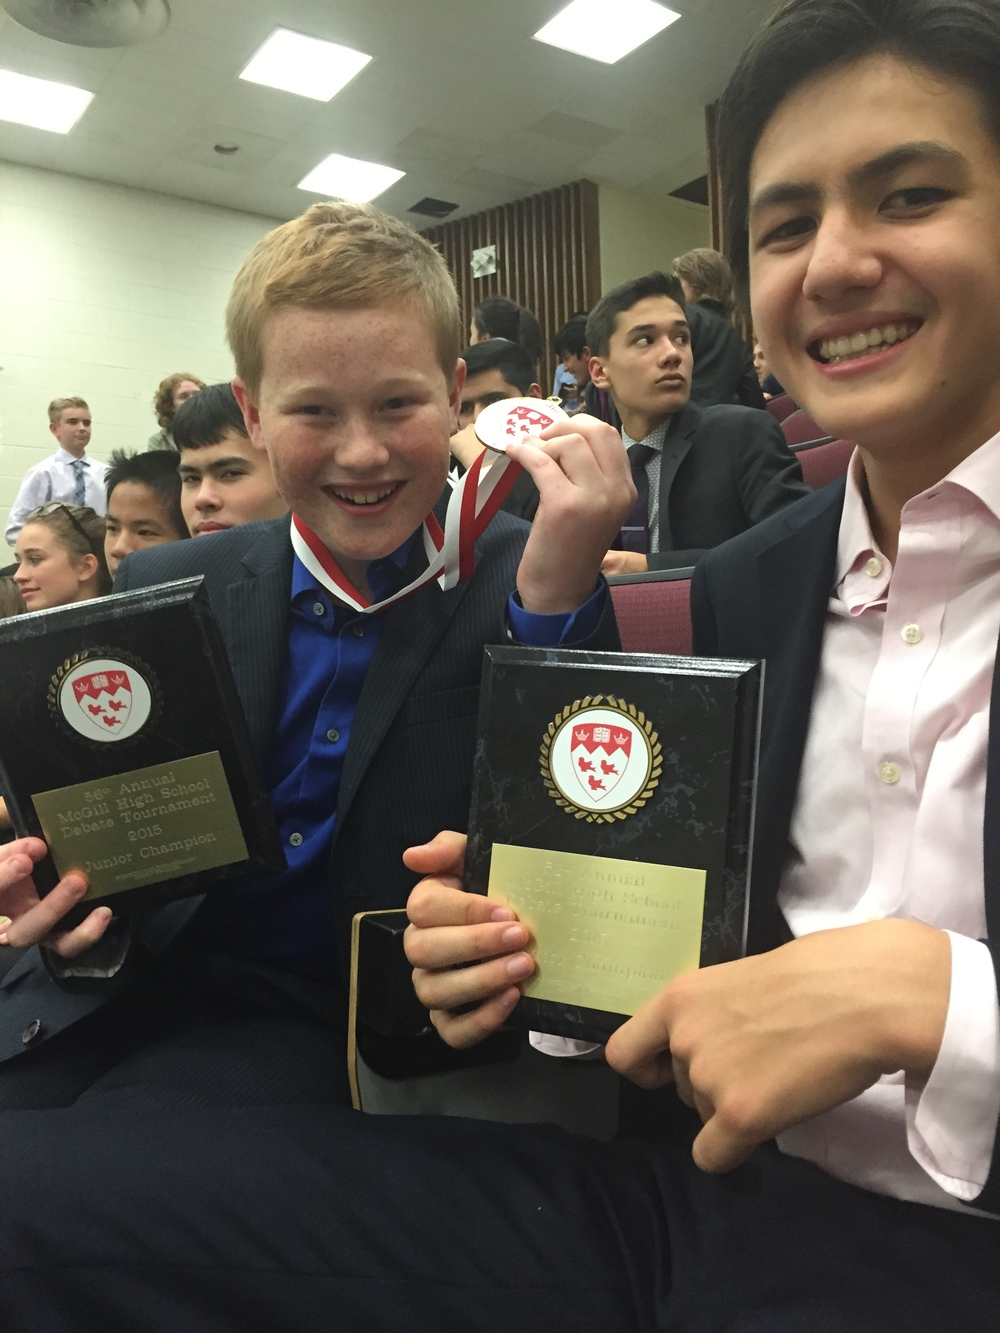 Patrick got top Junior Speaker of the Tournament; Ben Small took 3rd Novice Speaker.